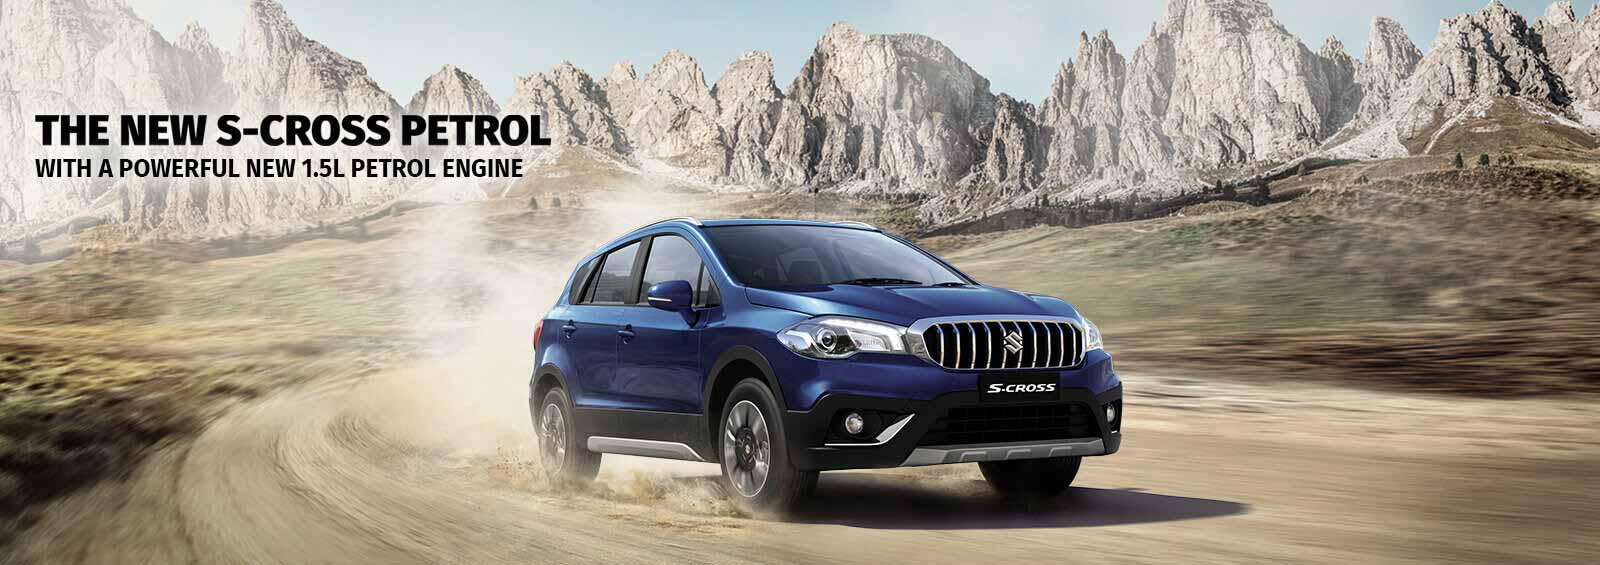 S-Cross KP AUTOMOTIVE Queens Road, Jaipur